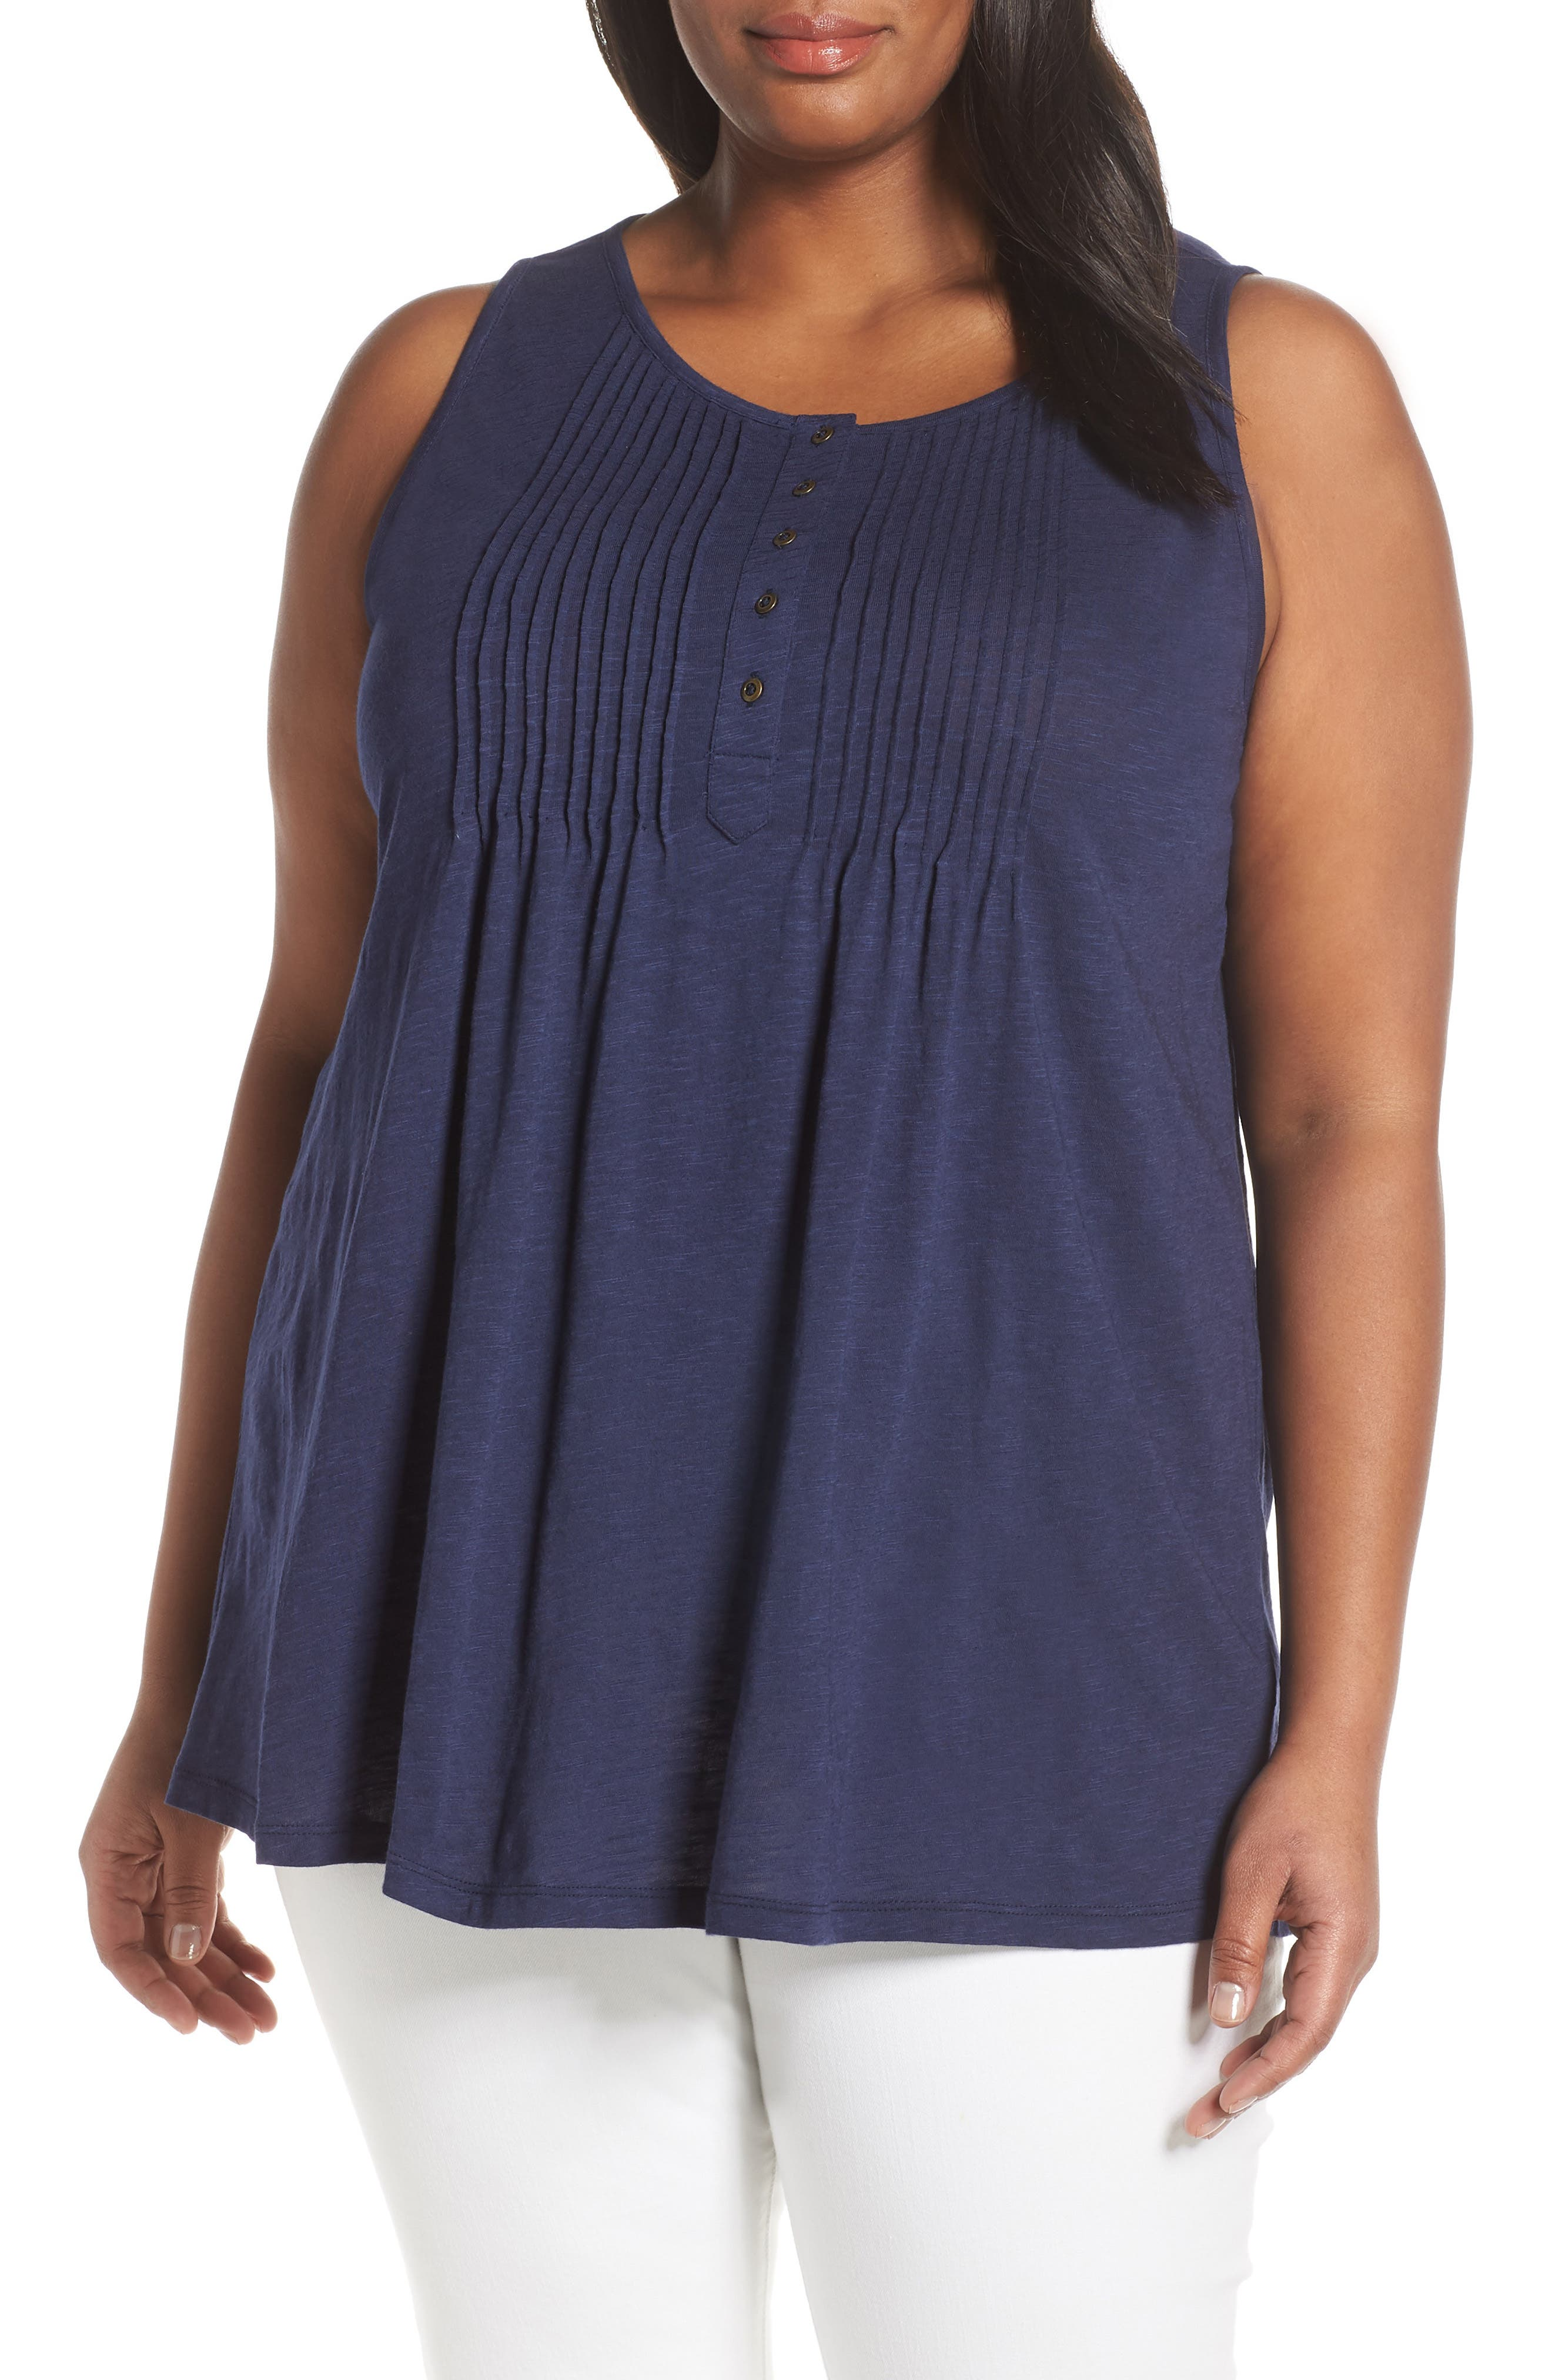 ffdeb97aa2e9 Women's Plus-Size Tops | Nordstrom